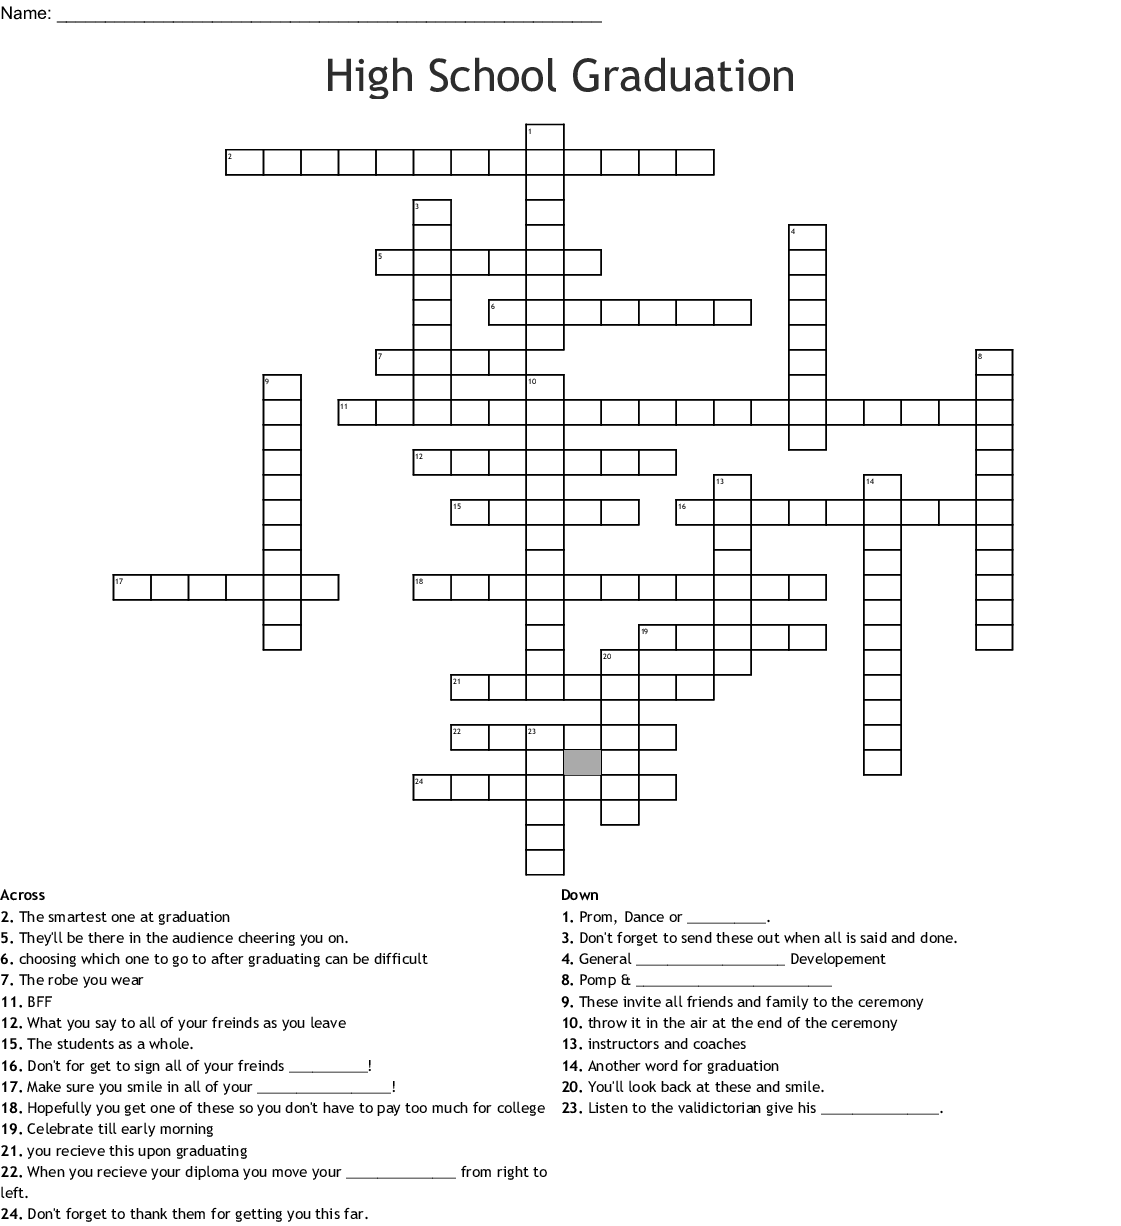 High School Graduation Crossword